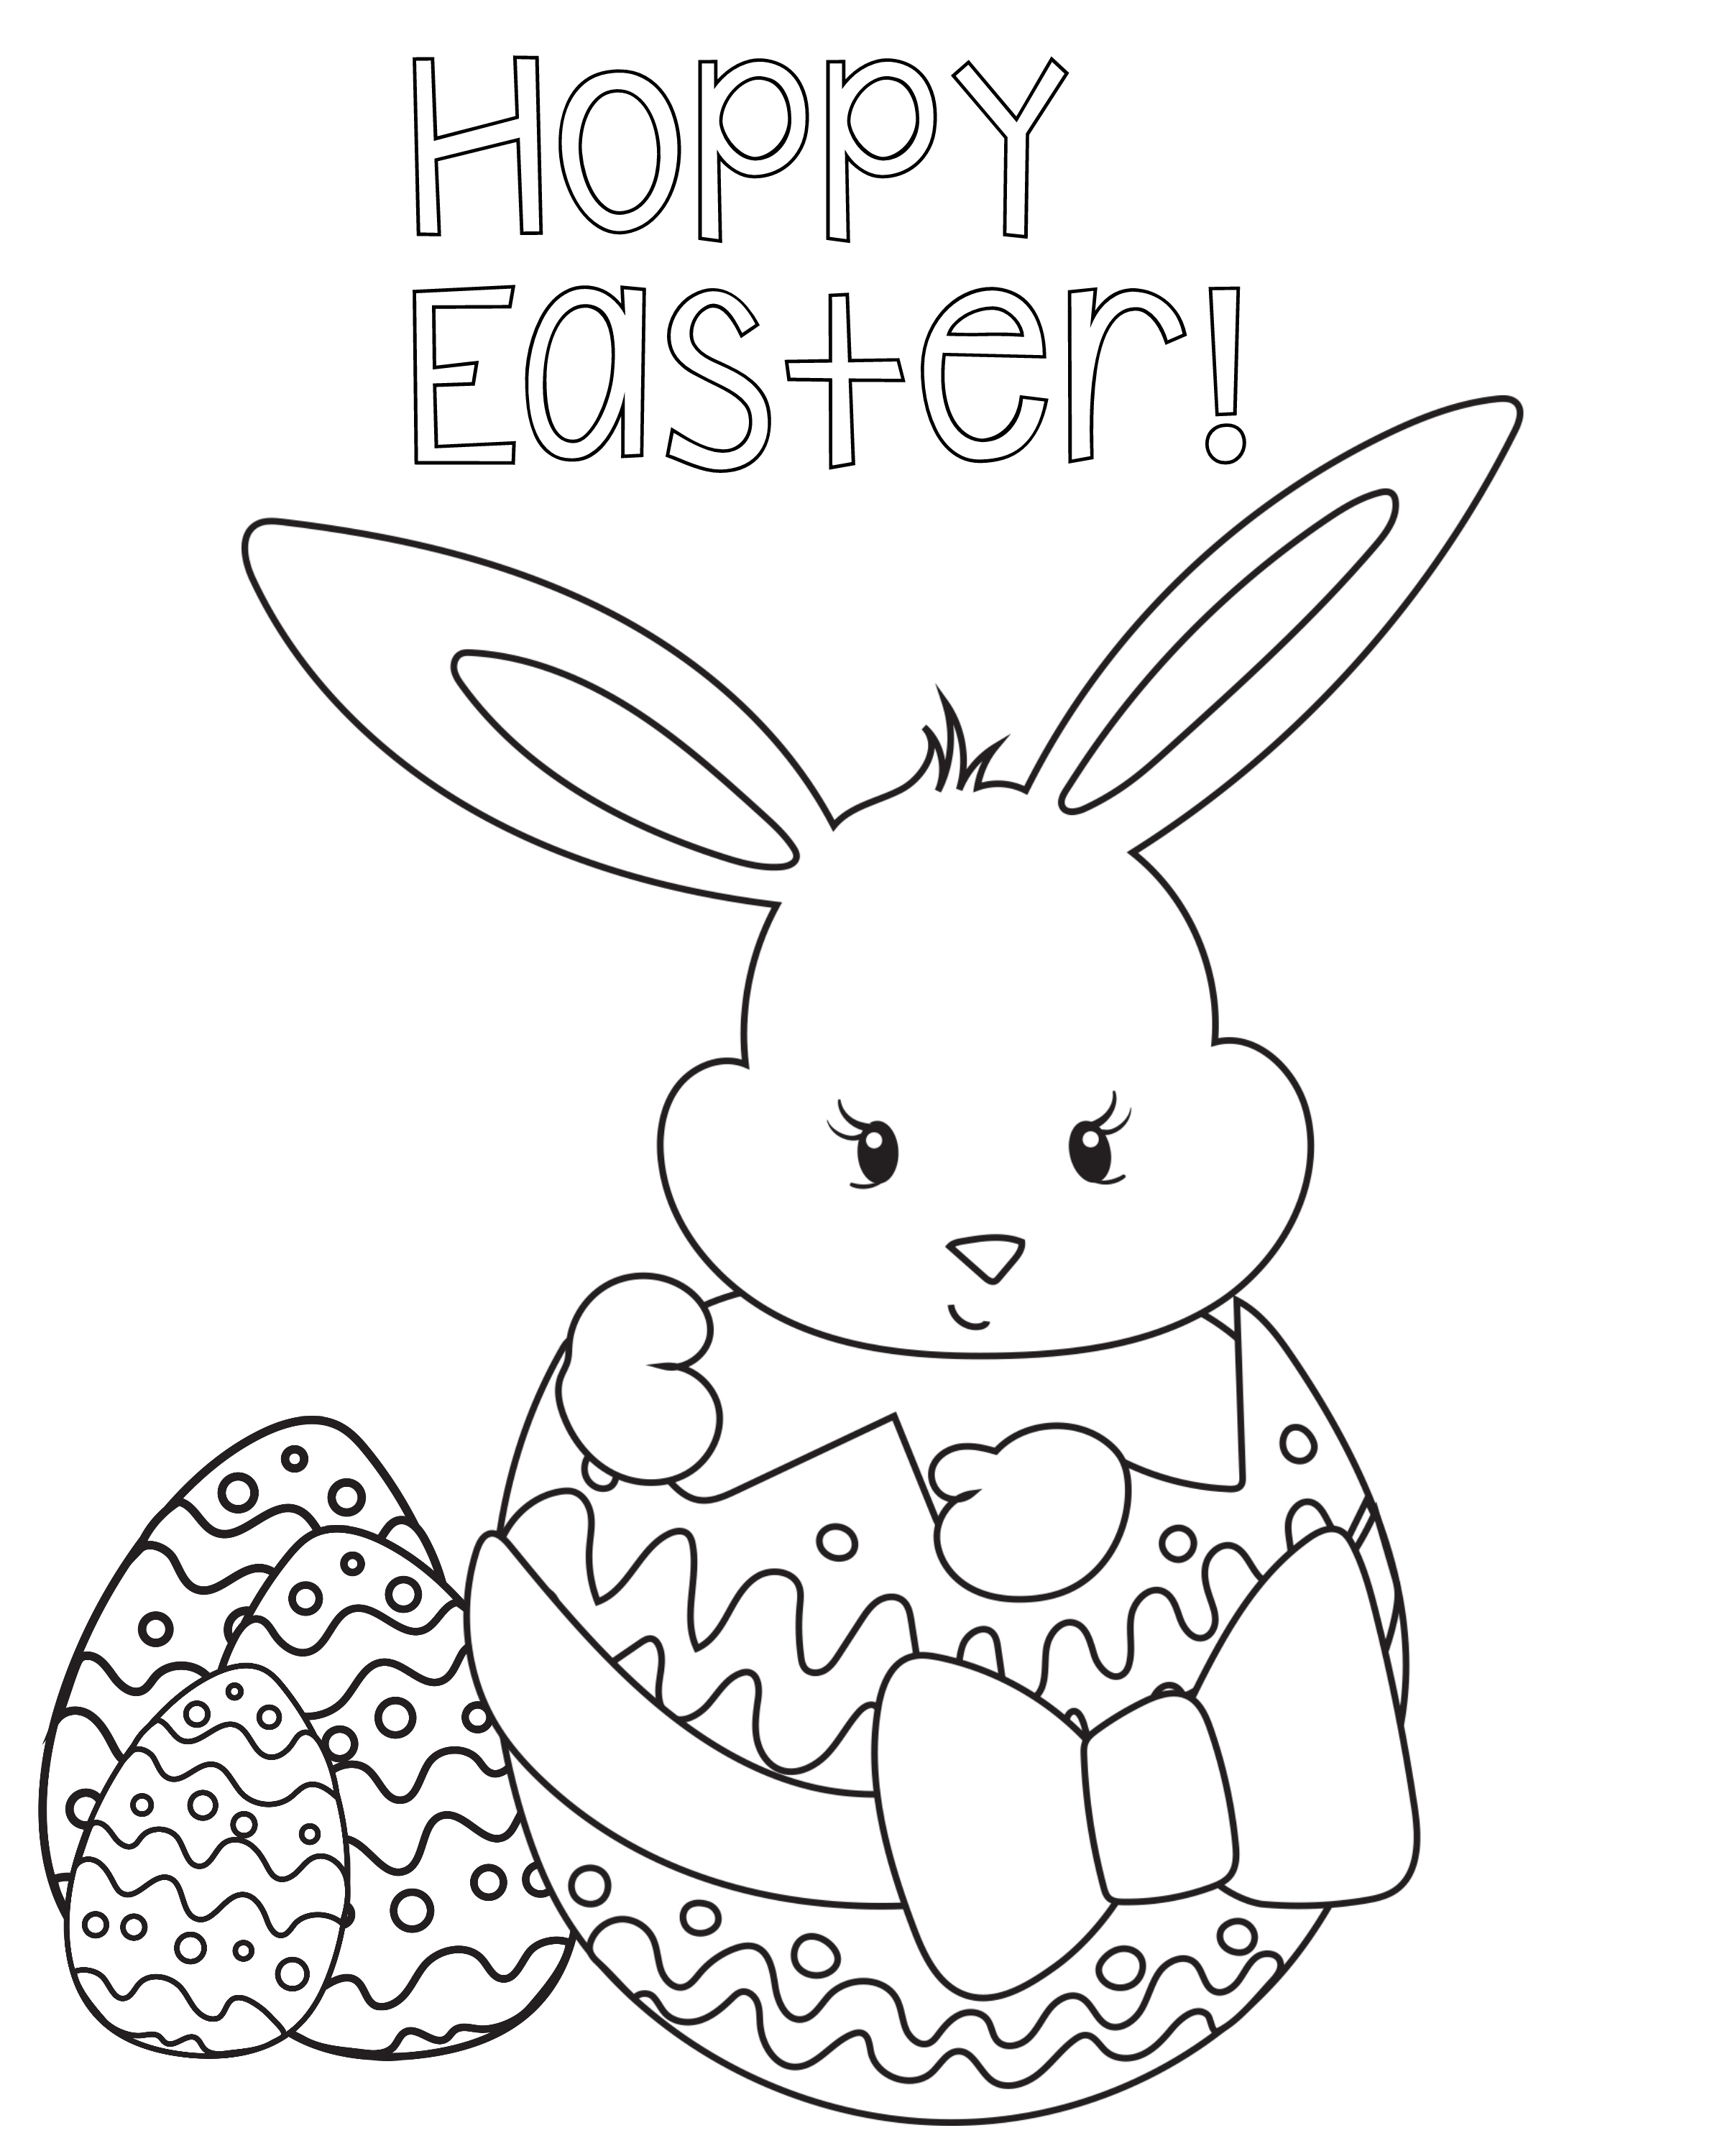 2400x3000 Printable Hilla Kitte Coloriing Hello Kitty Easter Coloring Page